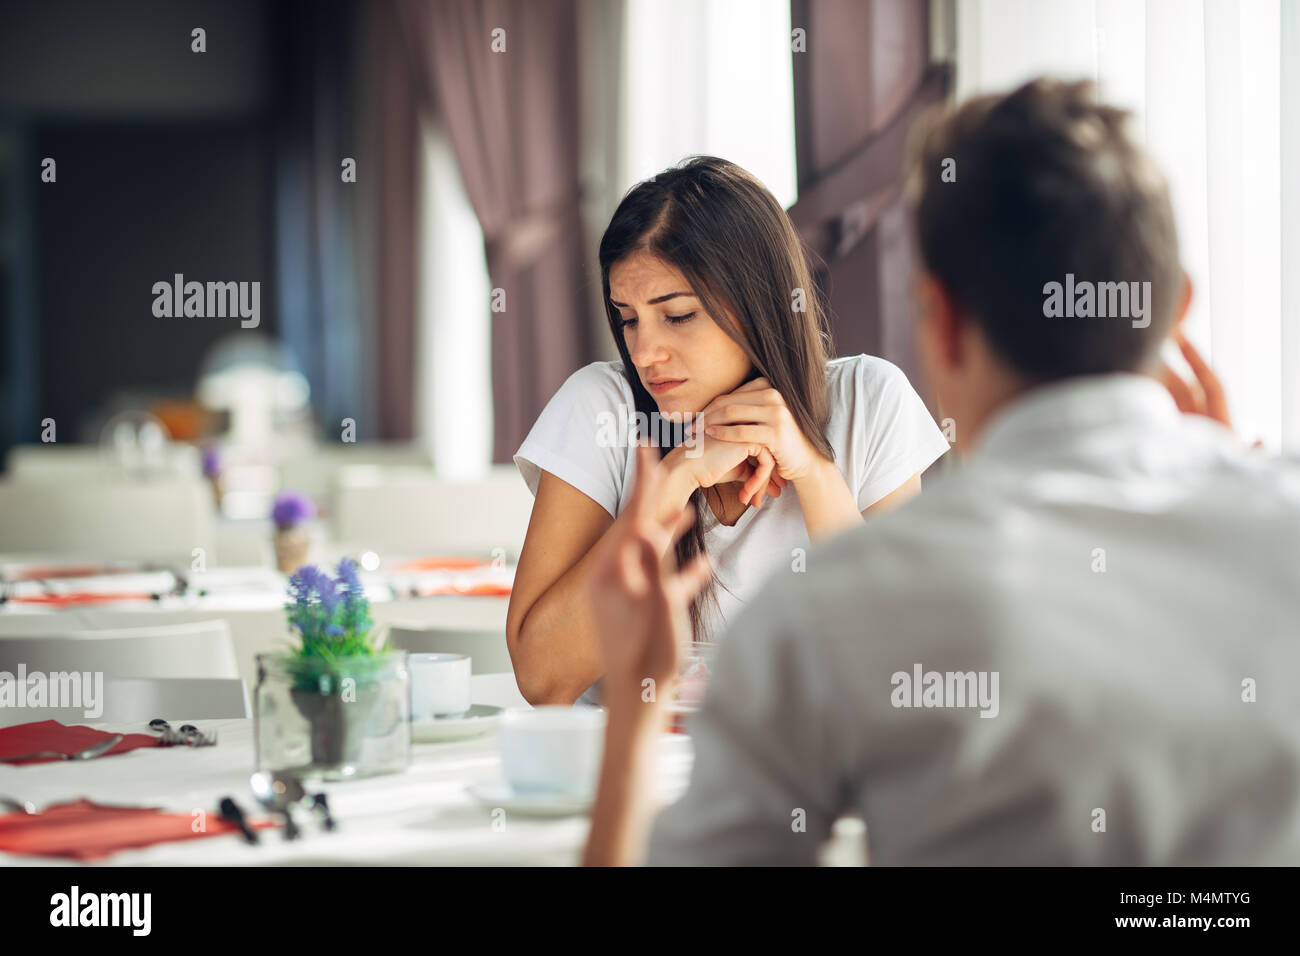 Sad depressed woman being verbally attacked.Mentally abused.Absent in conversation.Not listening.Private problems.Introvert - Stock Image